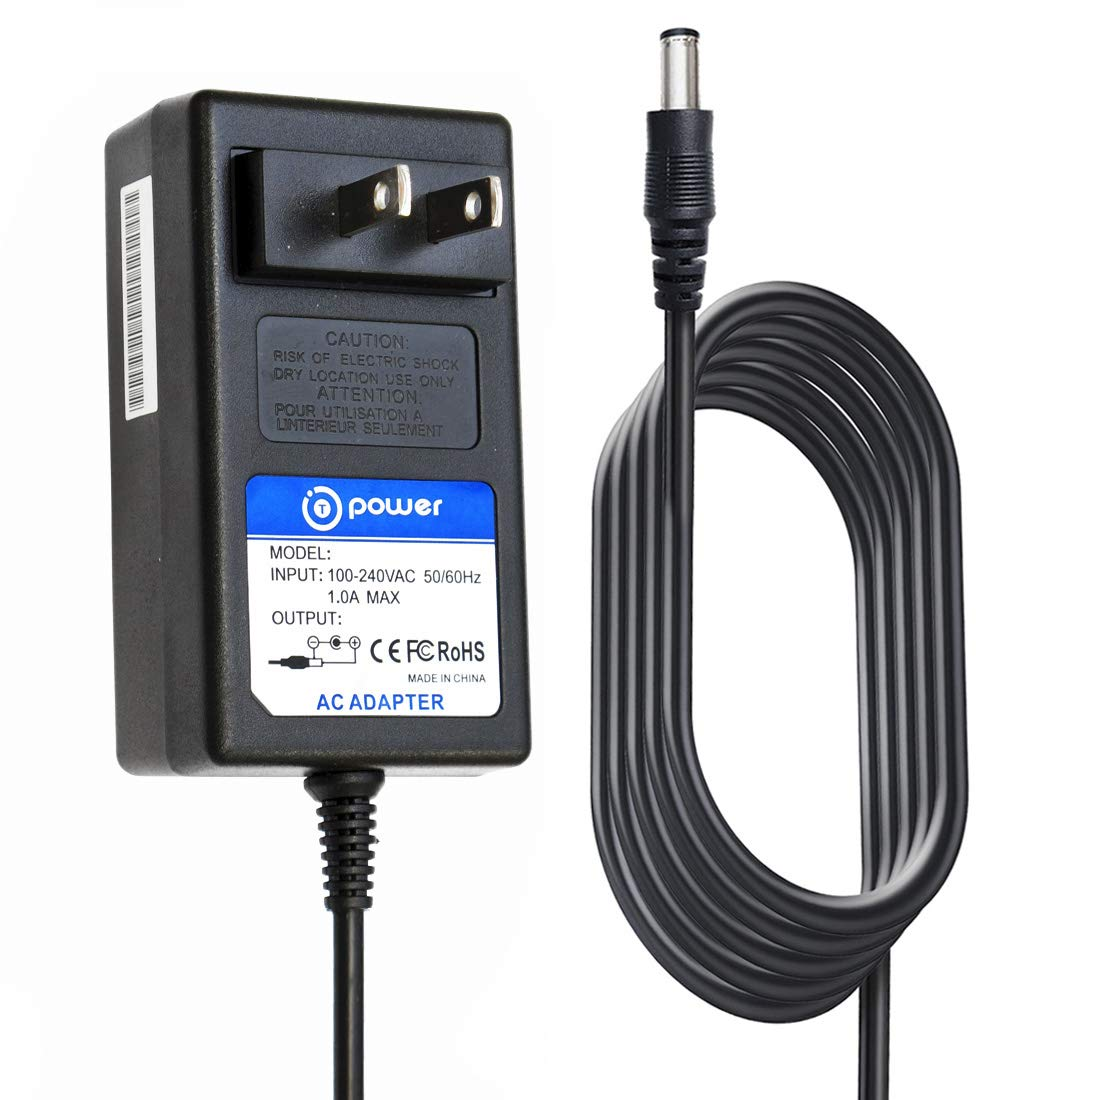 T-Power AC Adapter 6.6ft Cord Compatible with 4-PIN Canon imageFORMULA DR-M160 DR-M140 DRM140 DRM160 DR-M160II M111091 MA2-9717 Image Formula Office Document Scanner 0114T279 Ac Dc Adapter